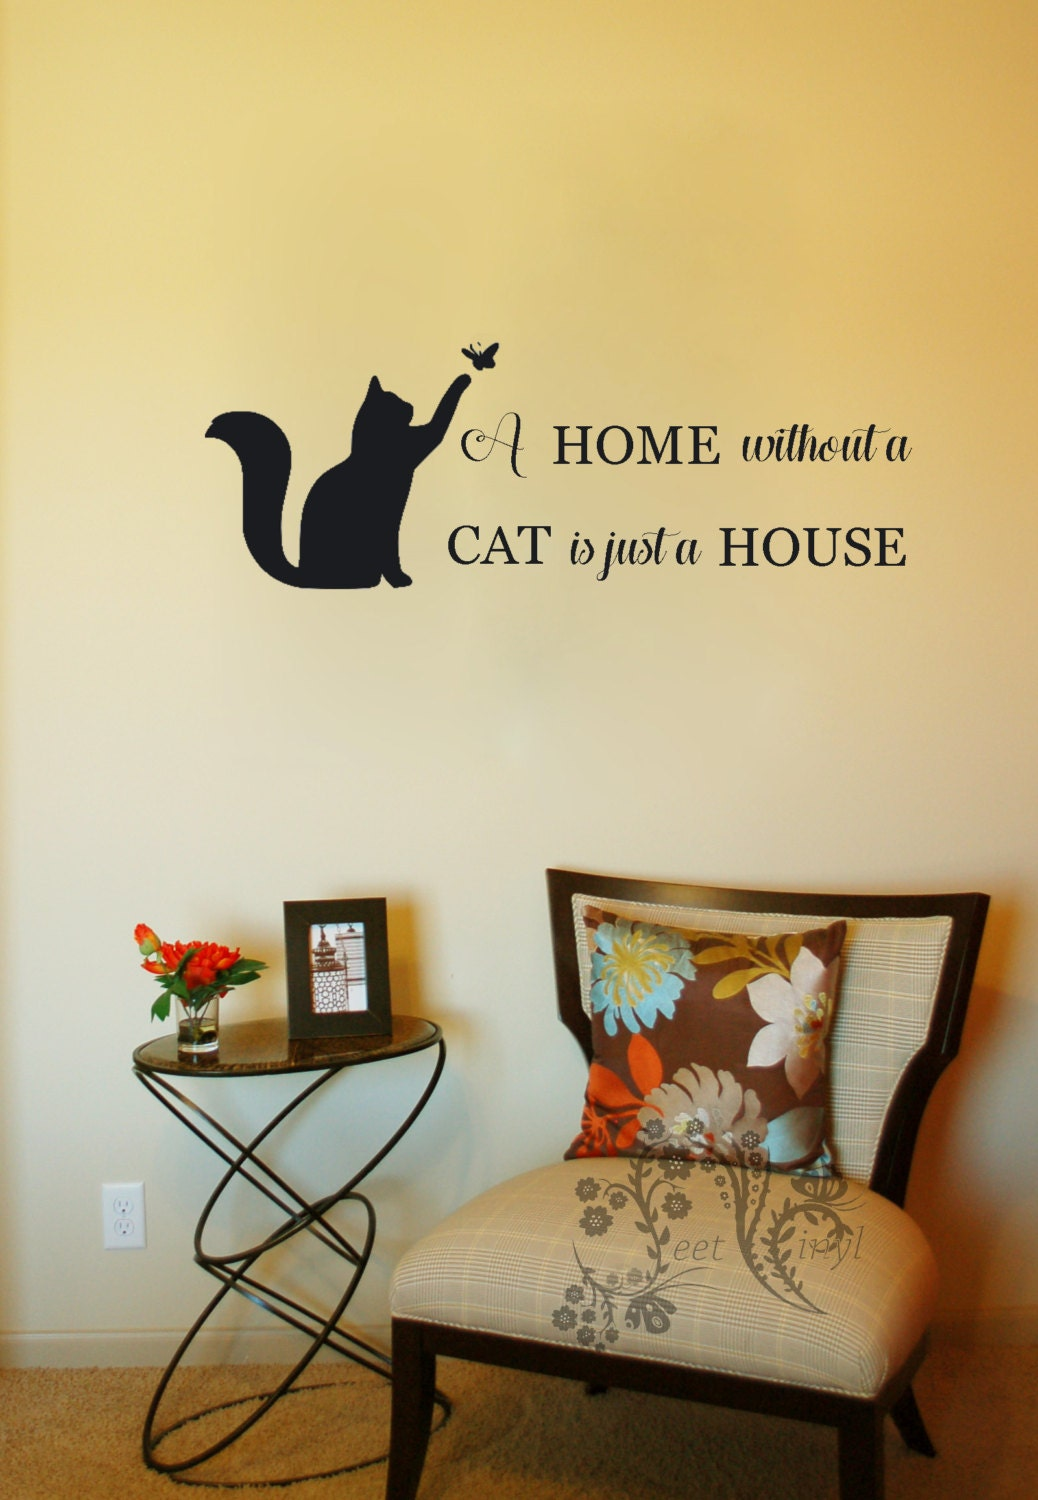 A home without a cat is just a house Family wall Decals